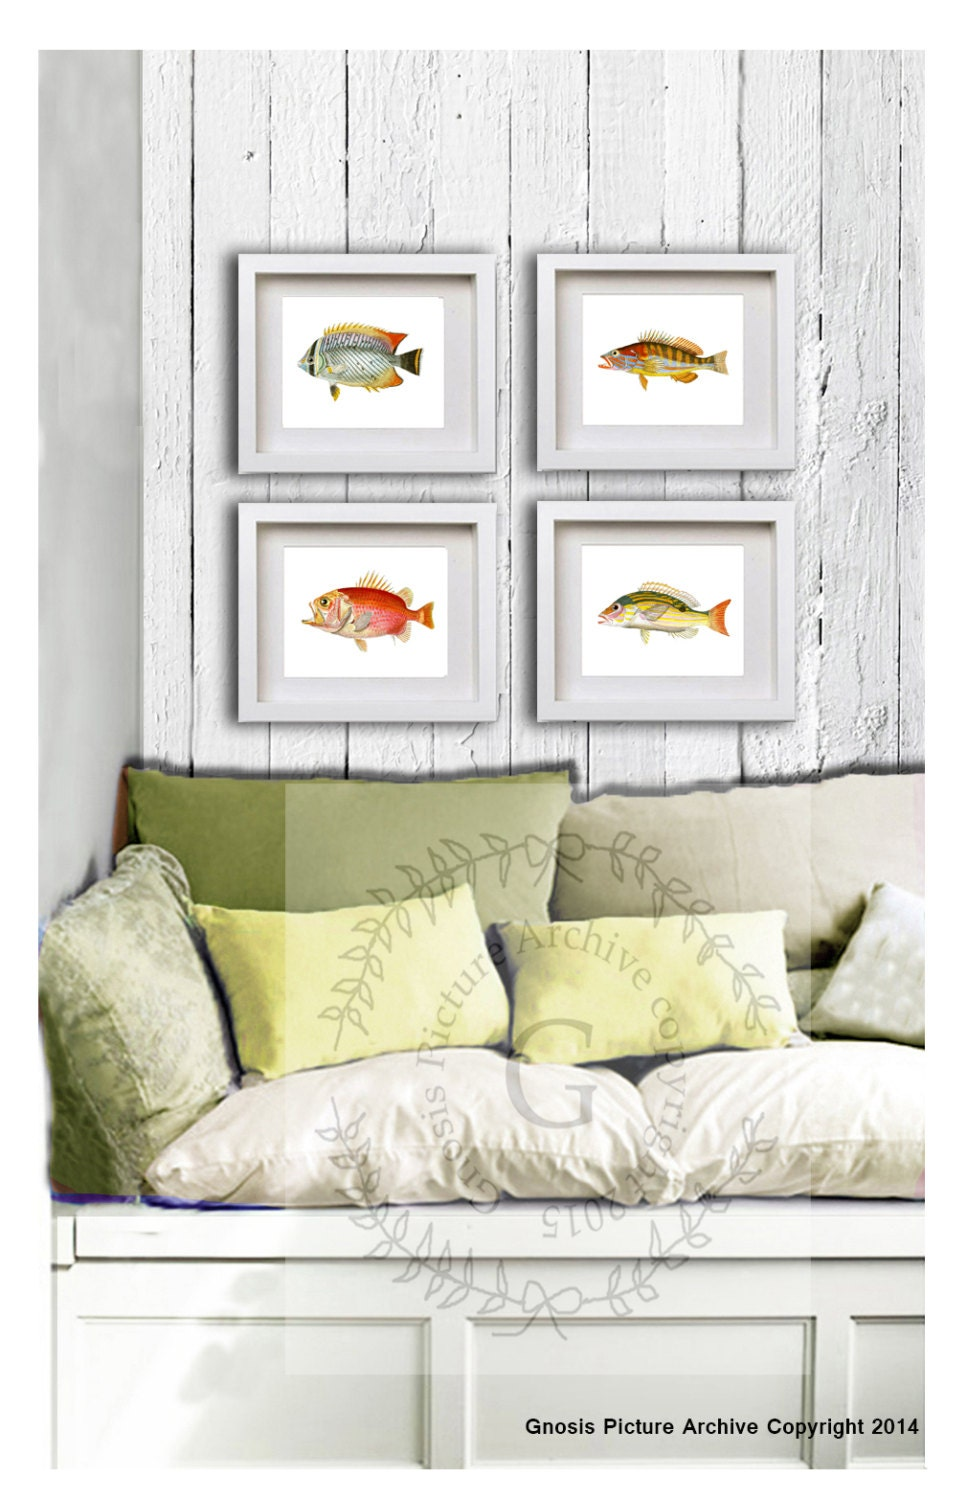 Back to school fisheries student gift fish decor for bathroom for Bathroom fish decor